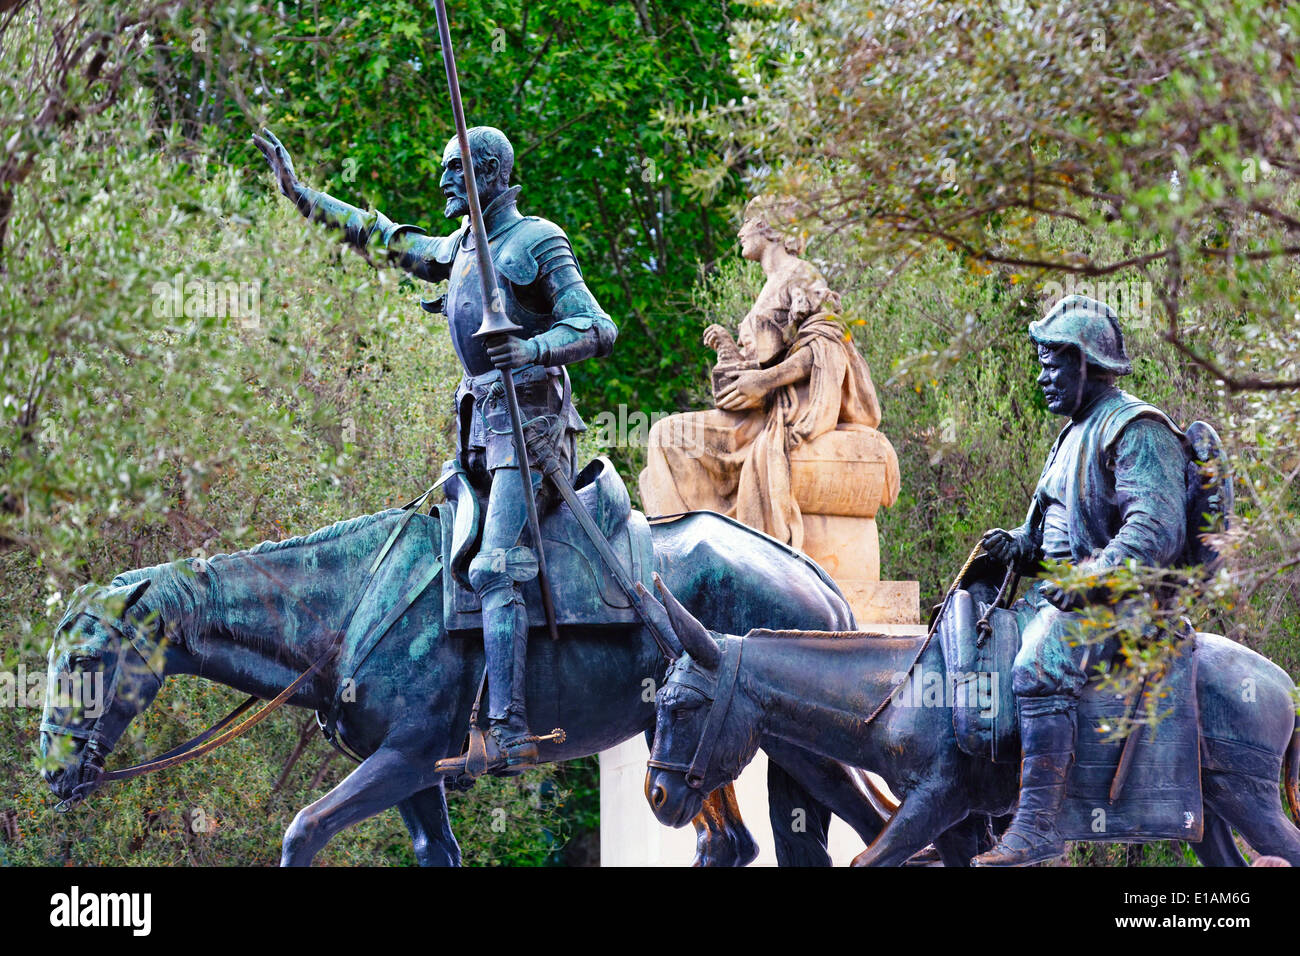 Close up View of Equestrian Statues of Don Quixote and Sancho Panza at the Cervantes Monument, Plaza de Espana, Madrid, Spain - Stock Image